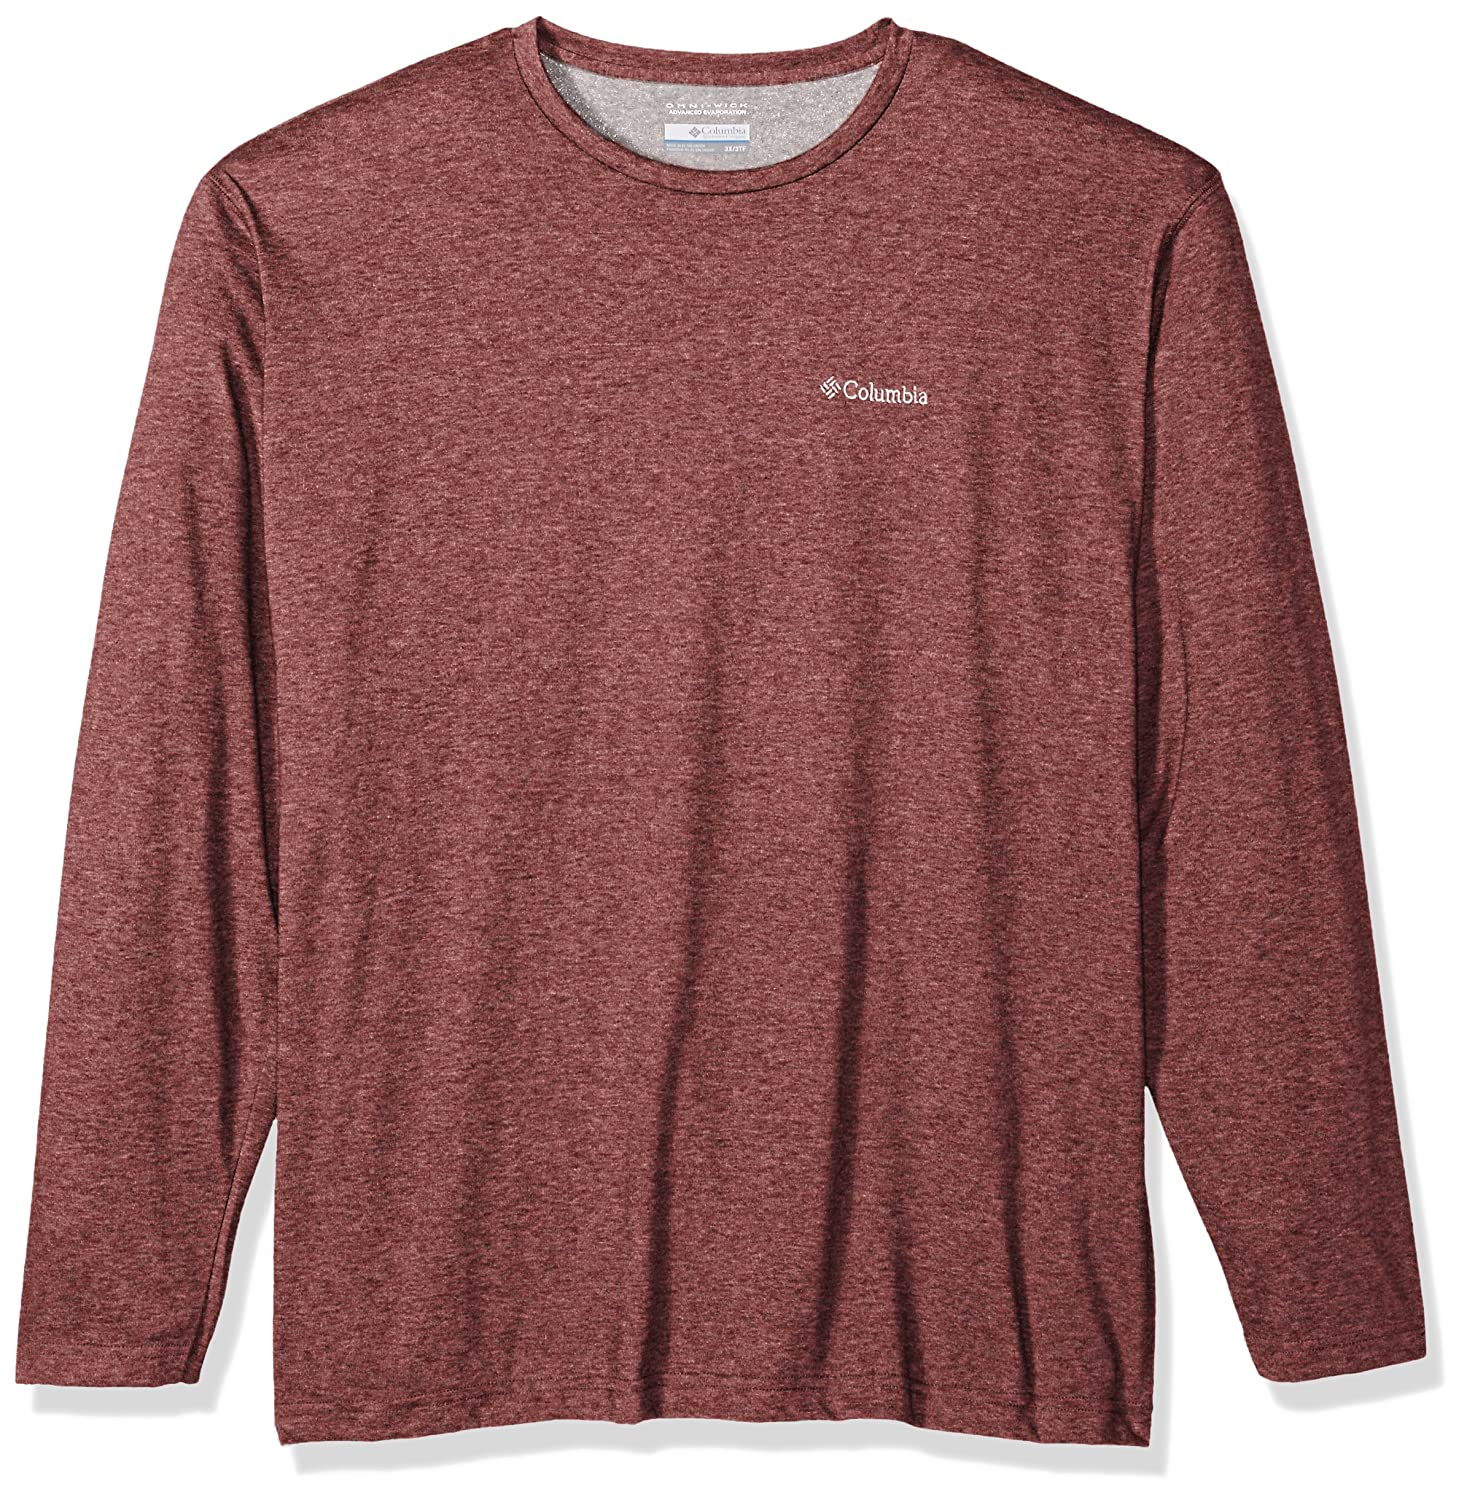 Columbia Men's Thistletown Park Big & Tall Long Sleeve Crew Columbia Men's Sportswear